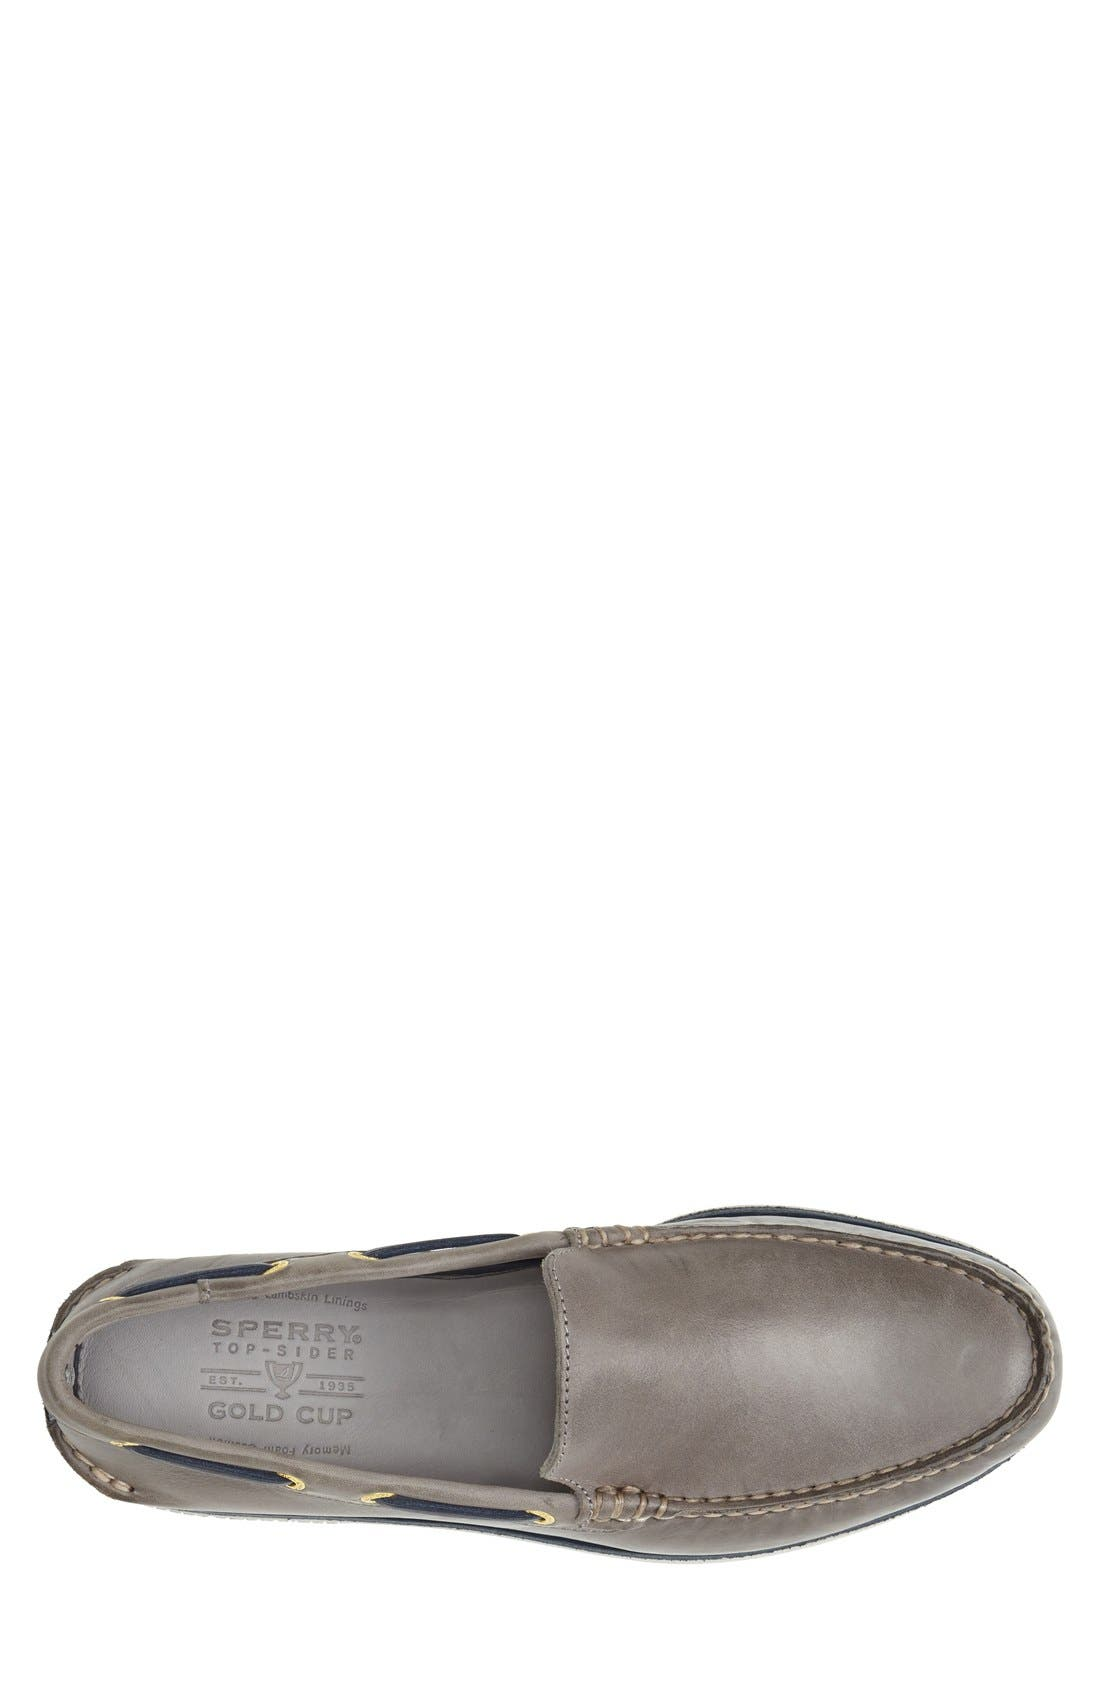 Top-Sider<sup>®</sup> 'Gold Cup - Authentic Original' Boat Shoe,                             Alternate thumbnail 3, color,                             020